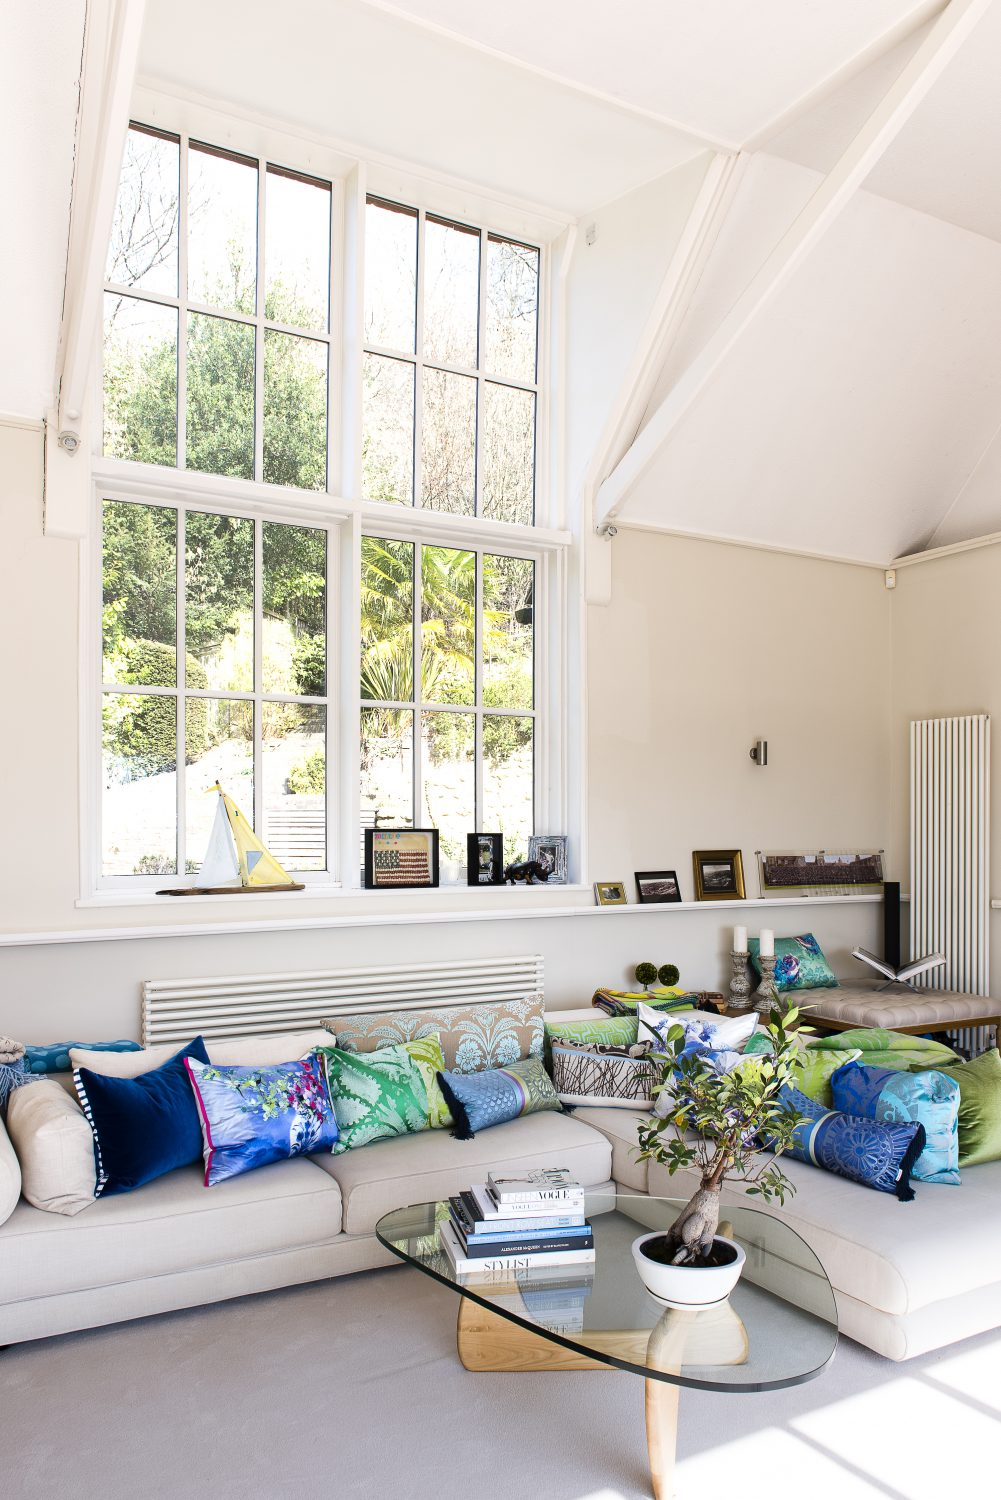 The original north facing window in what was the studio of the Victorian artist who originally owned the house. All the cushions on the Roche Bobois sofa are covered in Designers Guild fabrics. The Noguchi coffee table is from Heals